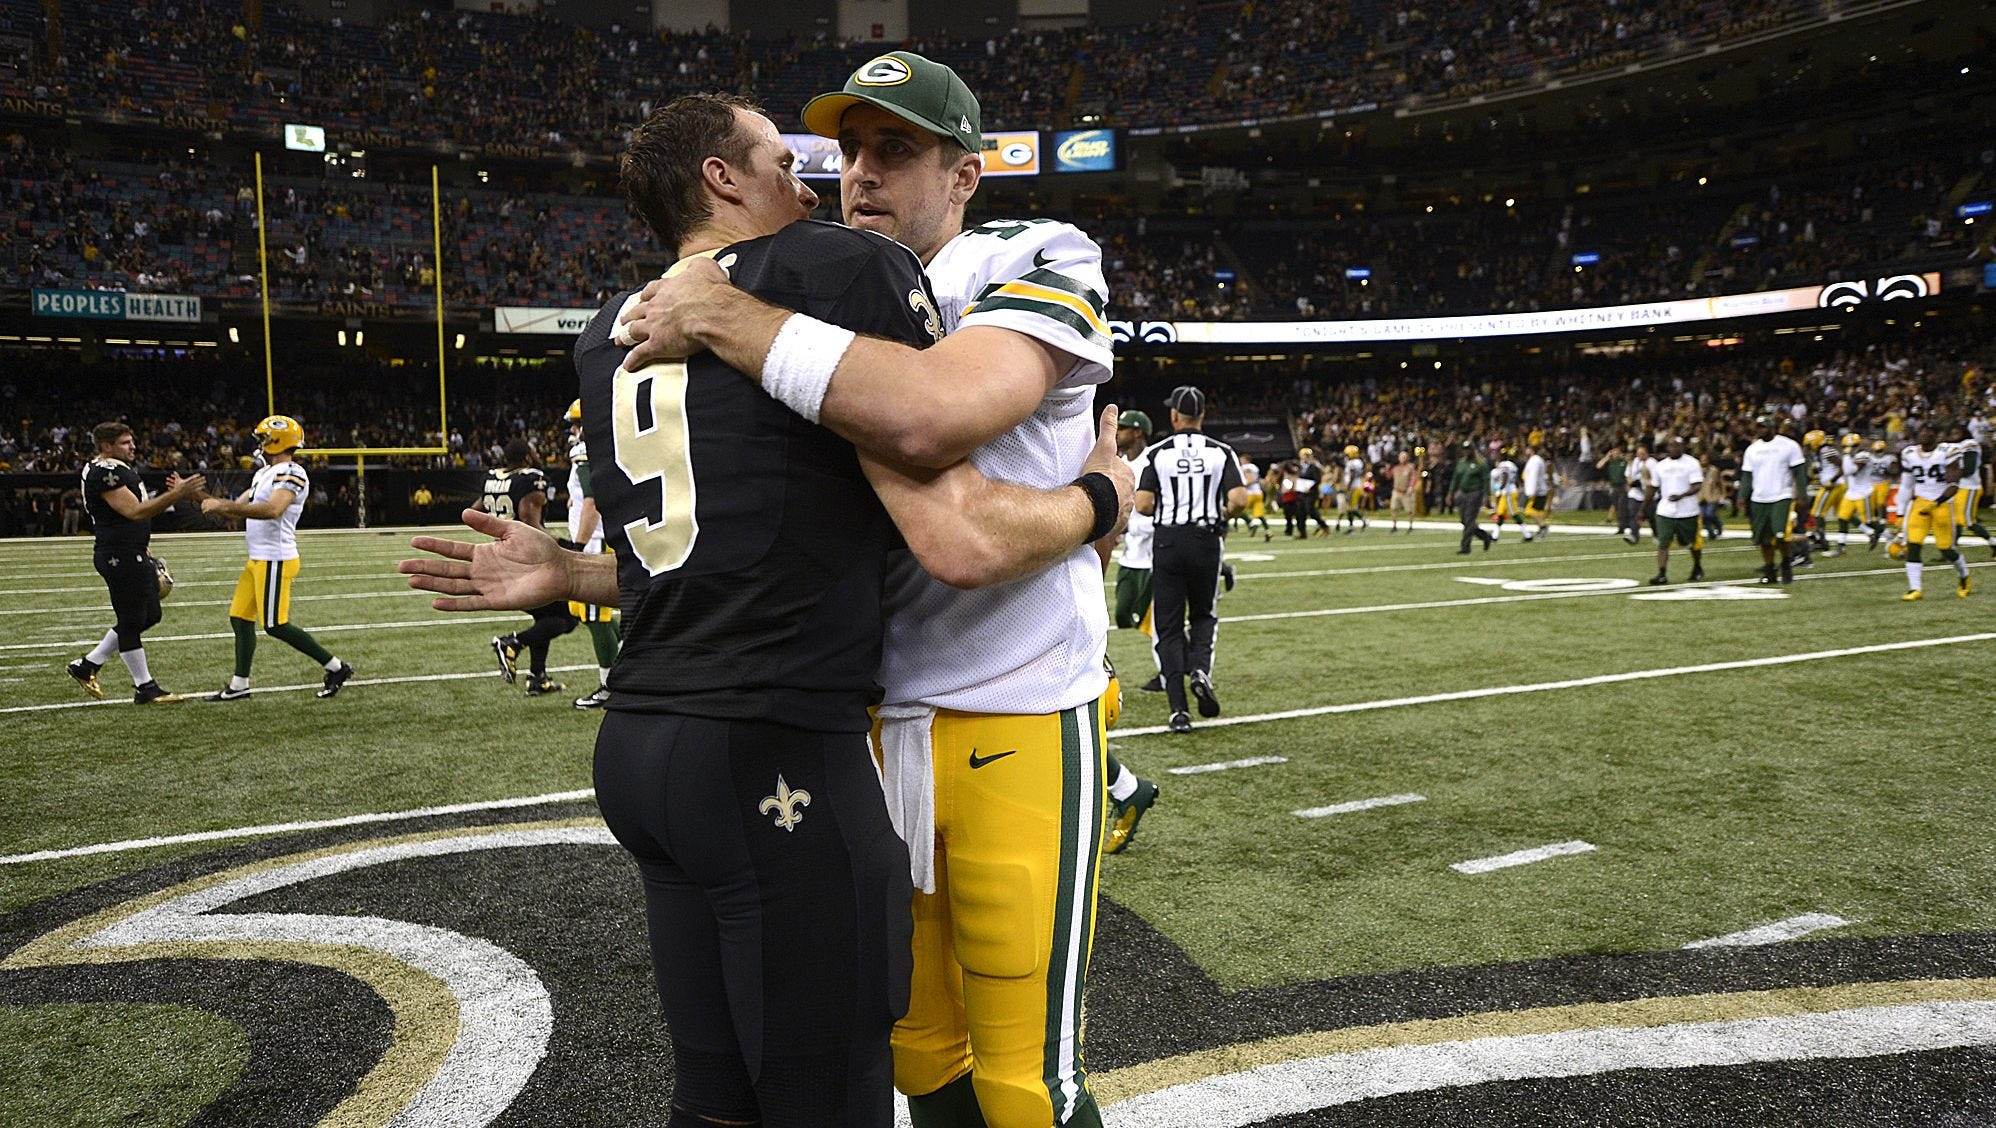 Rodgers-brees